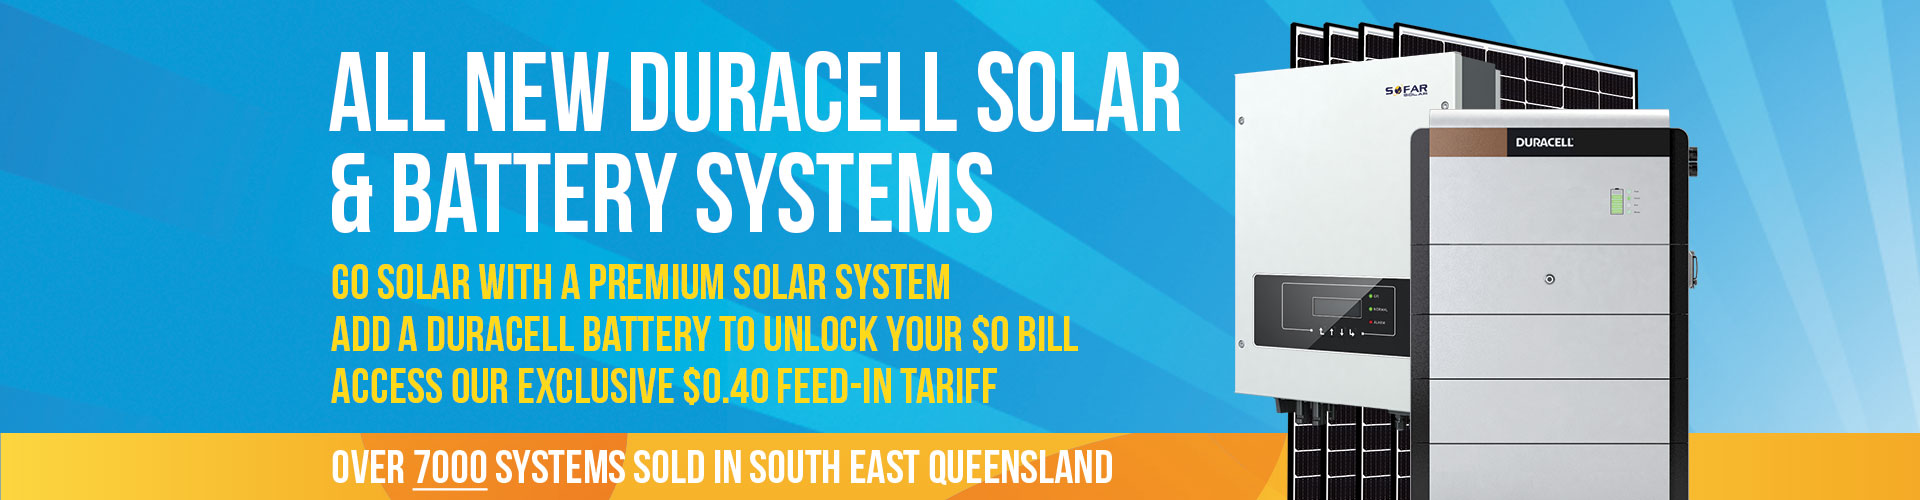 Duracell-Solar-Systems-Promo